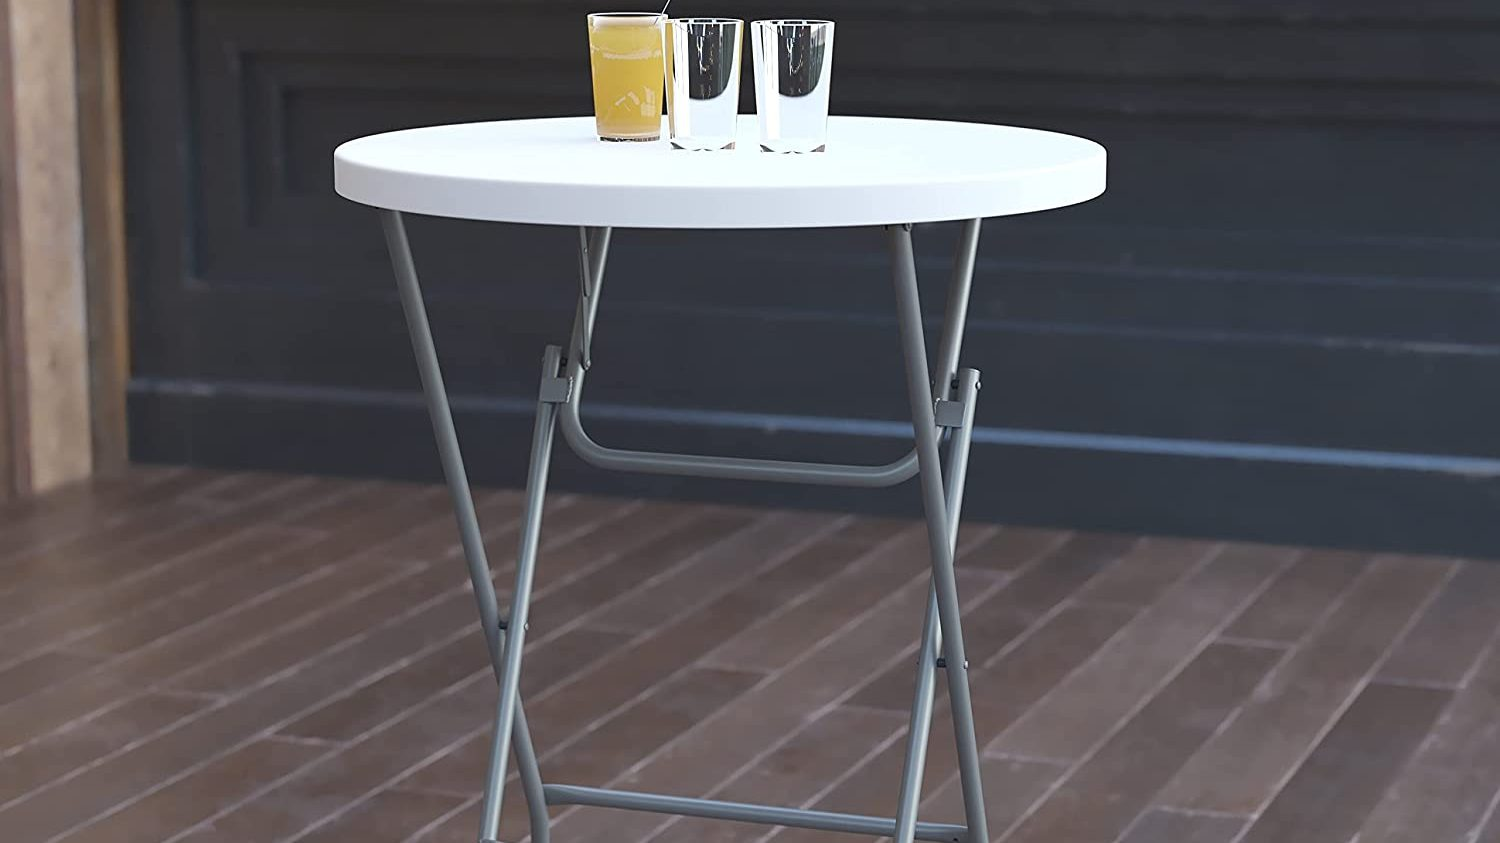 Best Folding High Top Table